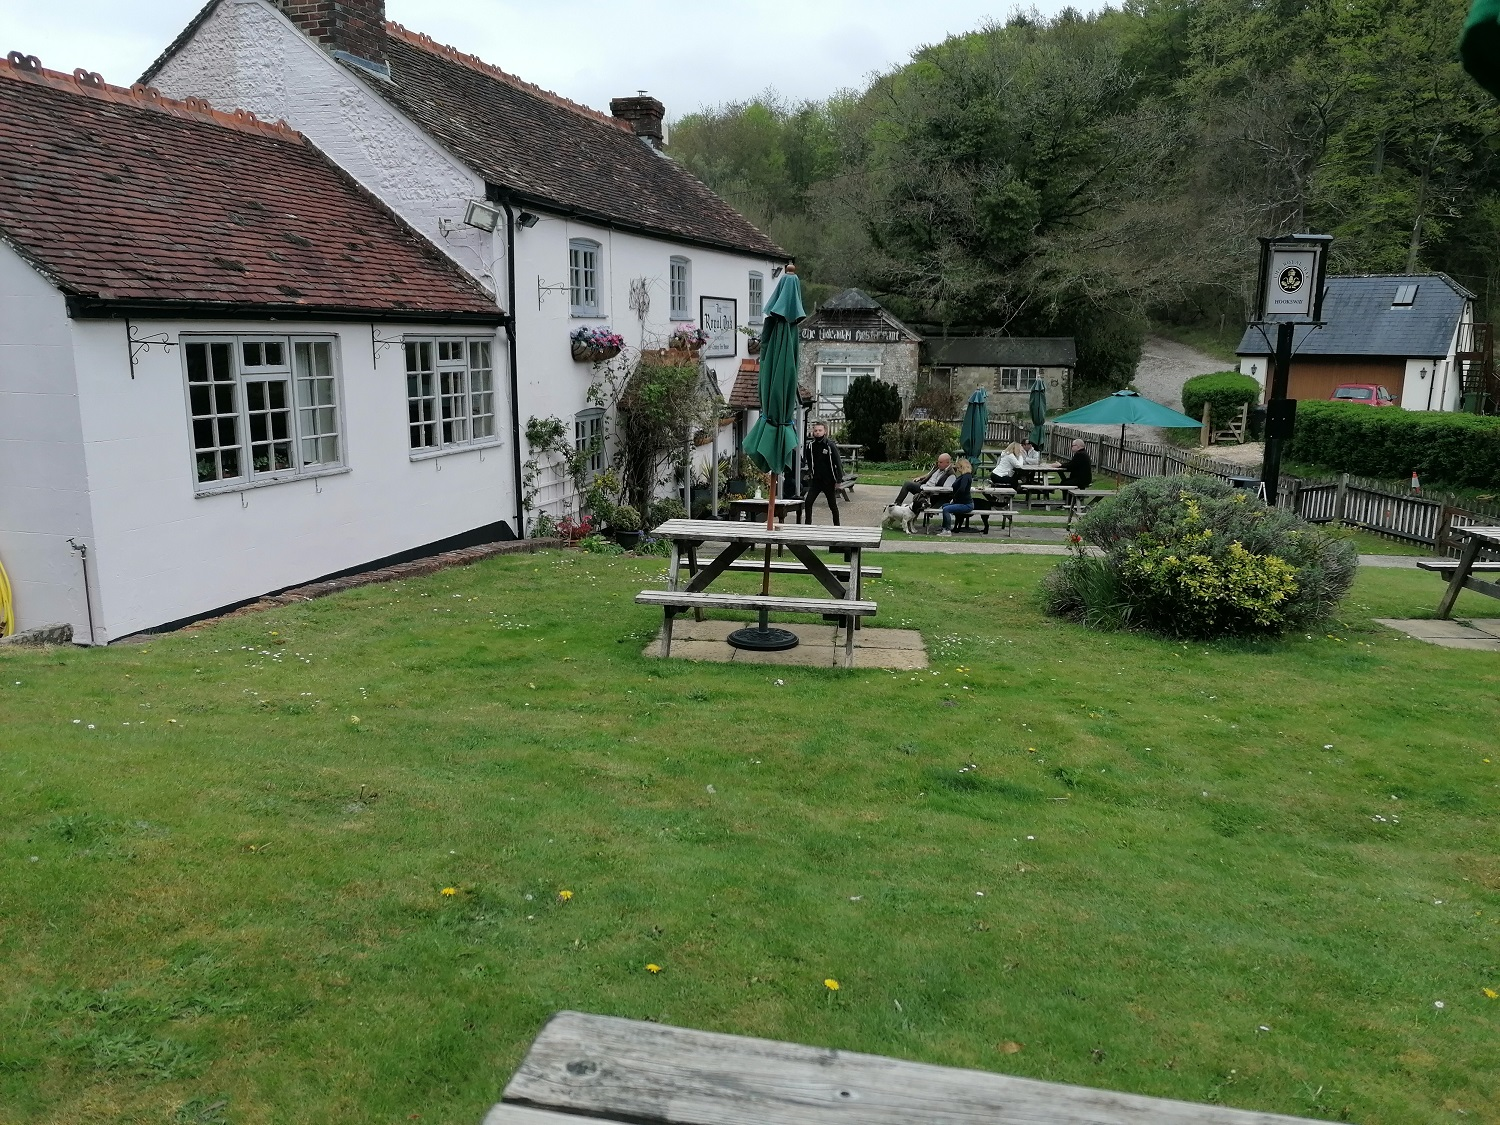 Pub lunch in the South Downs